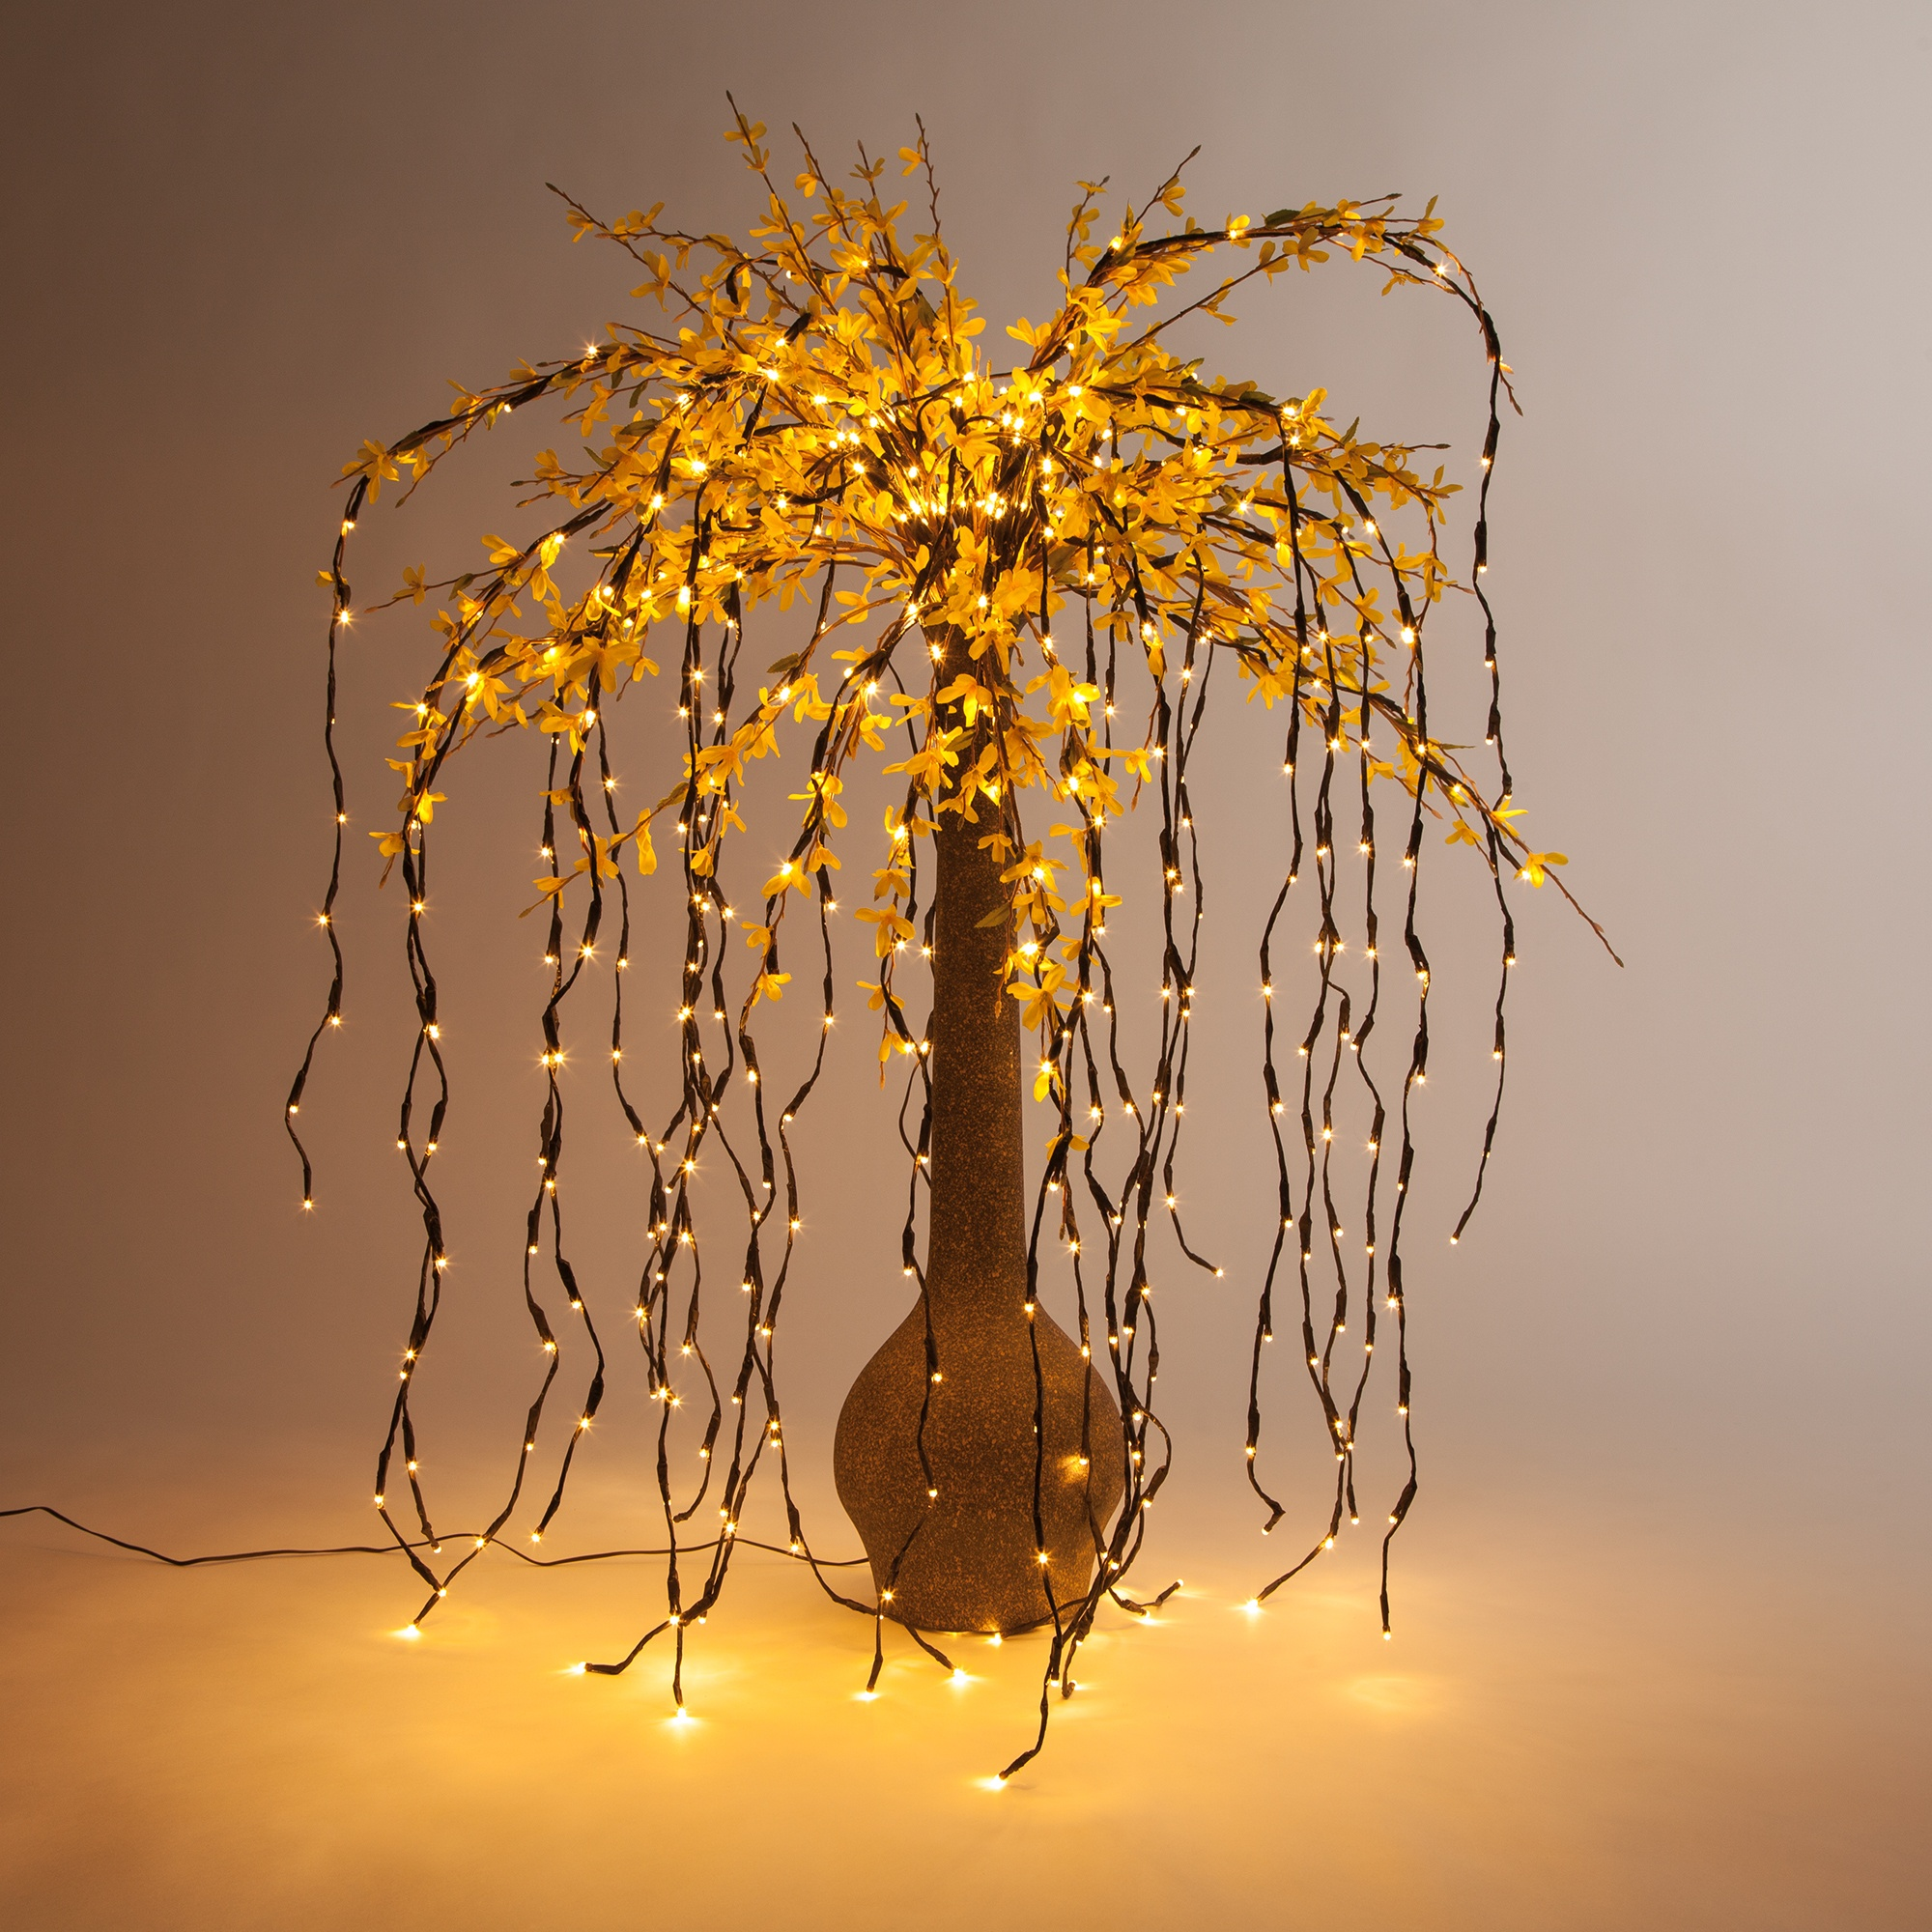 Falling Lighted Branches DIY Floral Arrangement